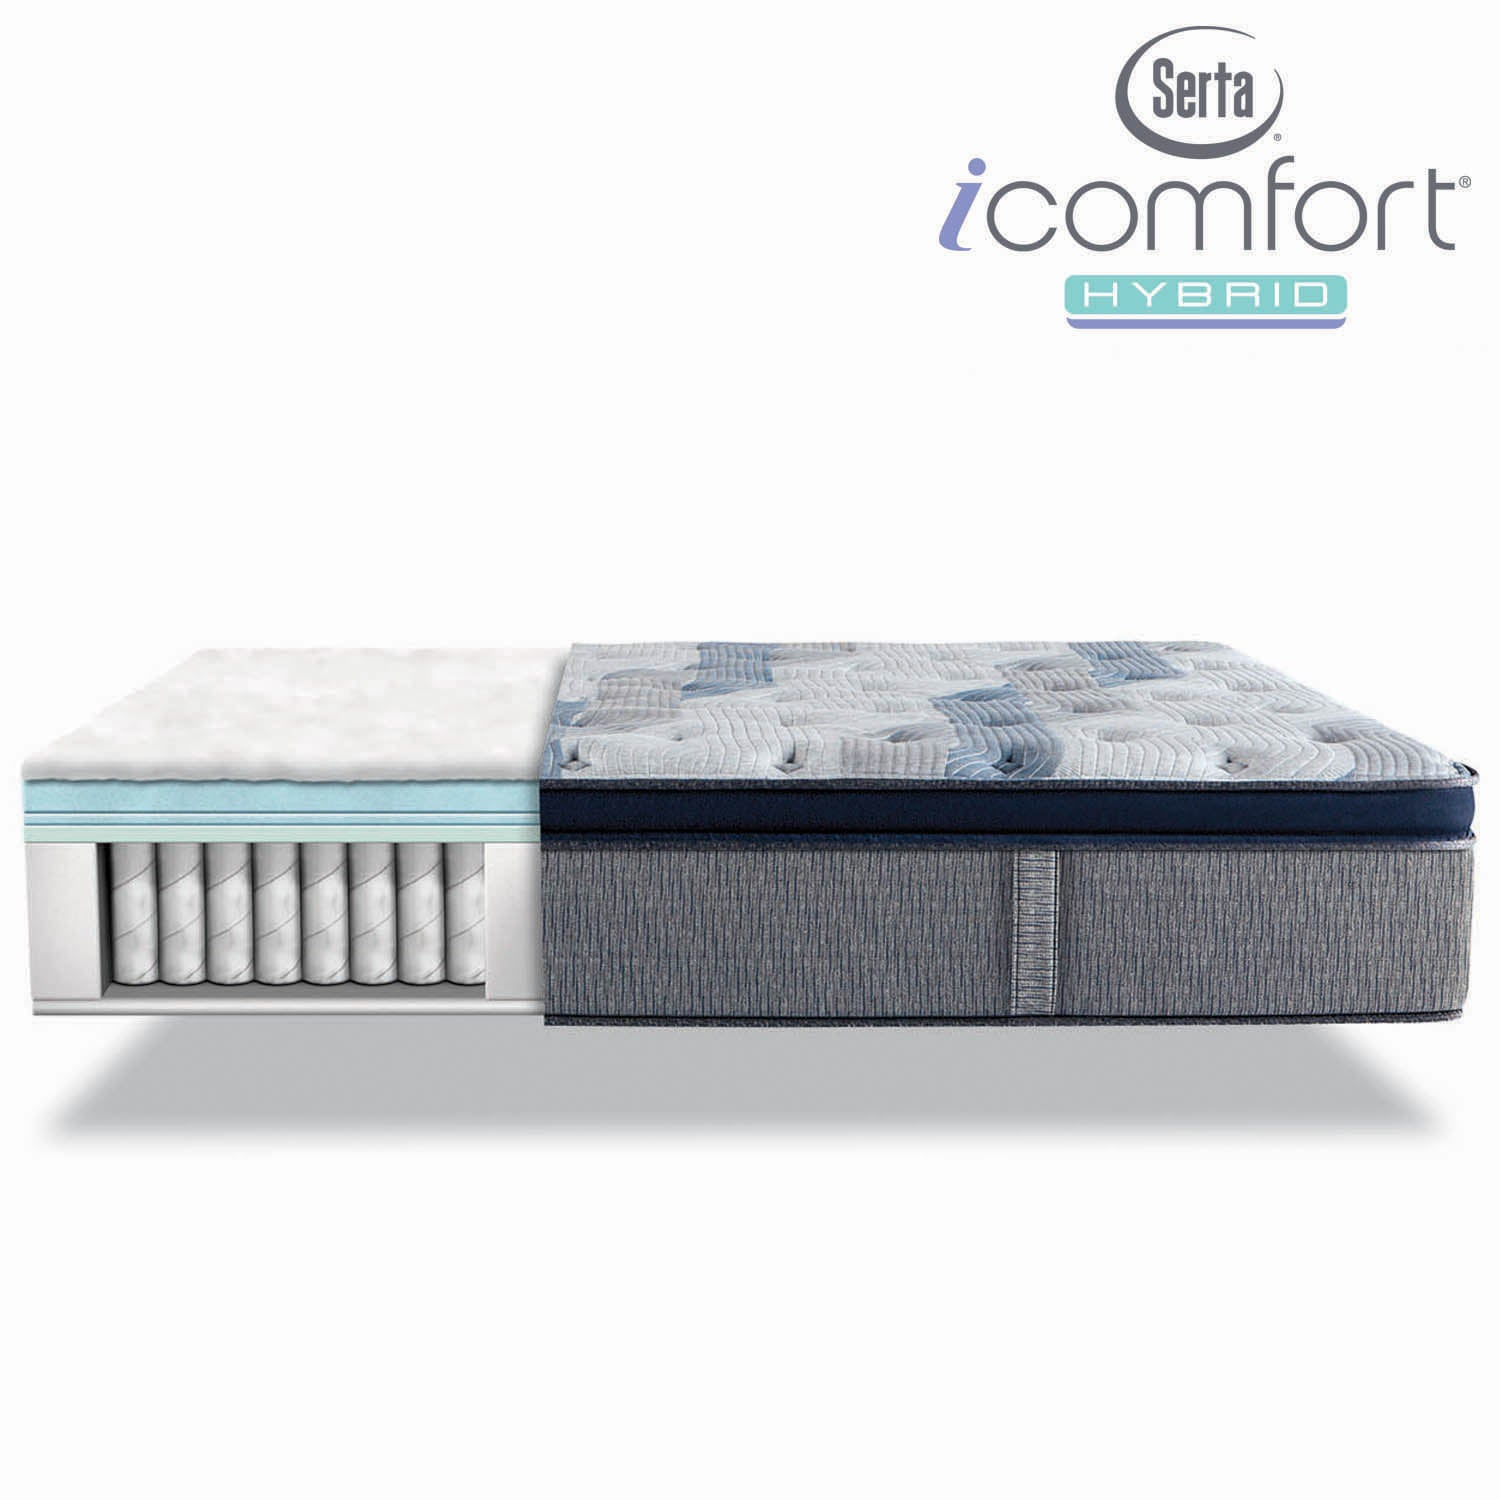 twin pad mattresses cover for and of foam sale very spring king best topper or queen latex discount cheap serta types inch memory pillow size price double set frame top gel box delivery new affordable mattress novaform